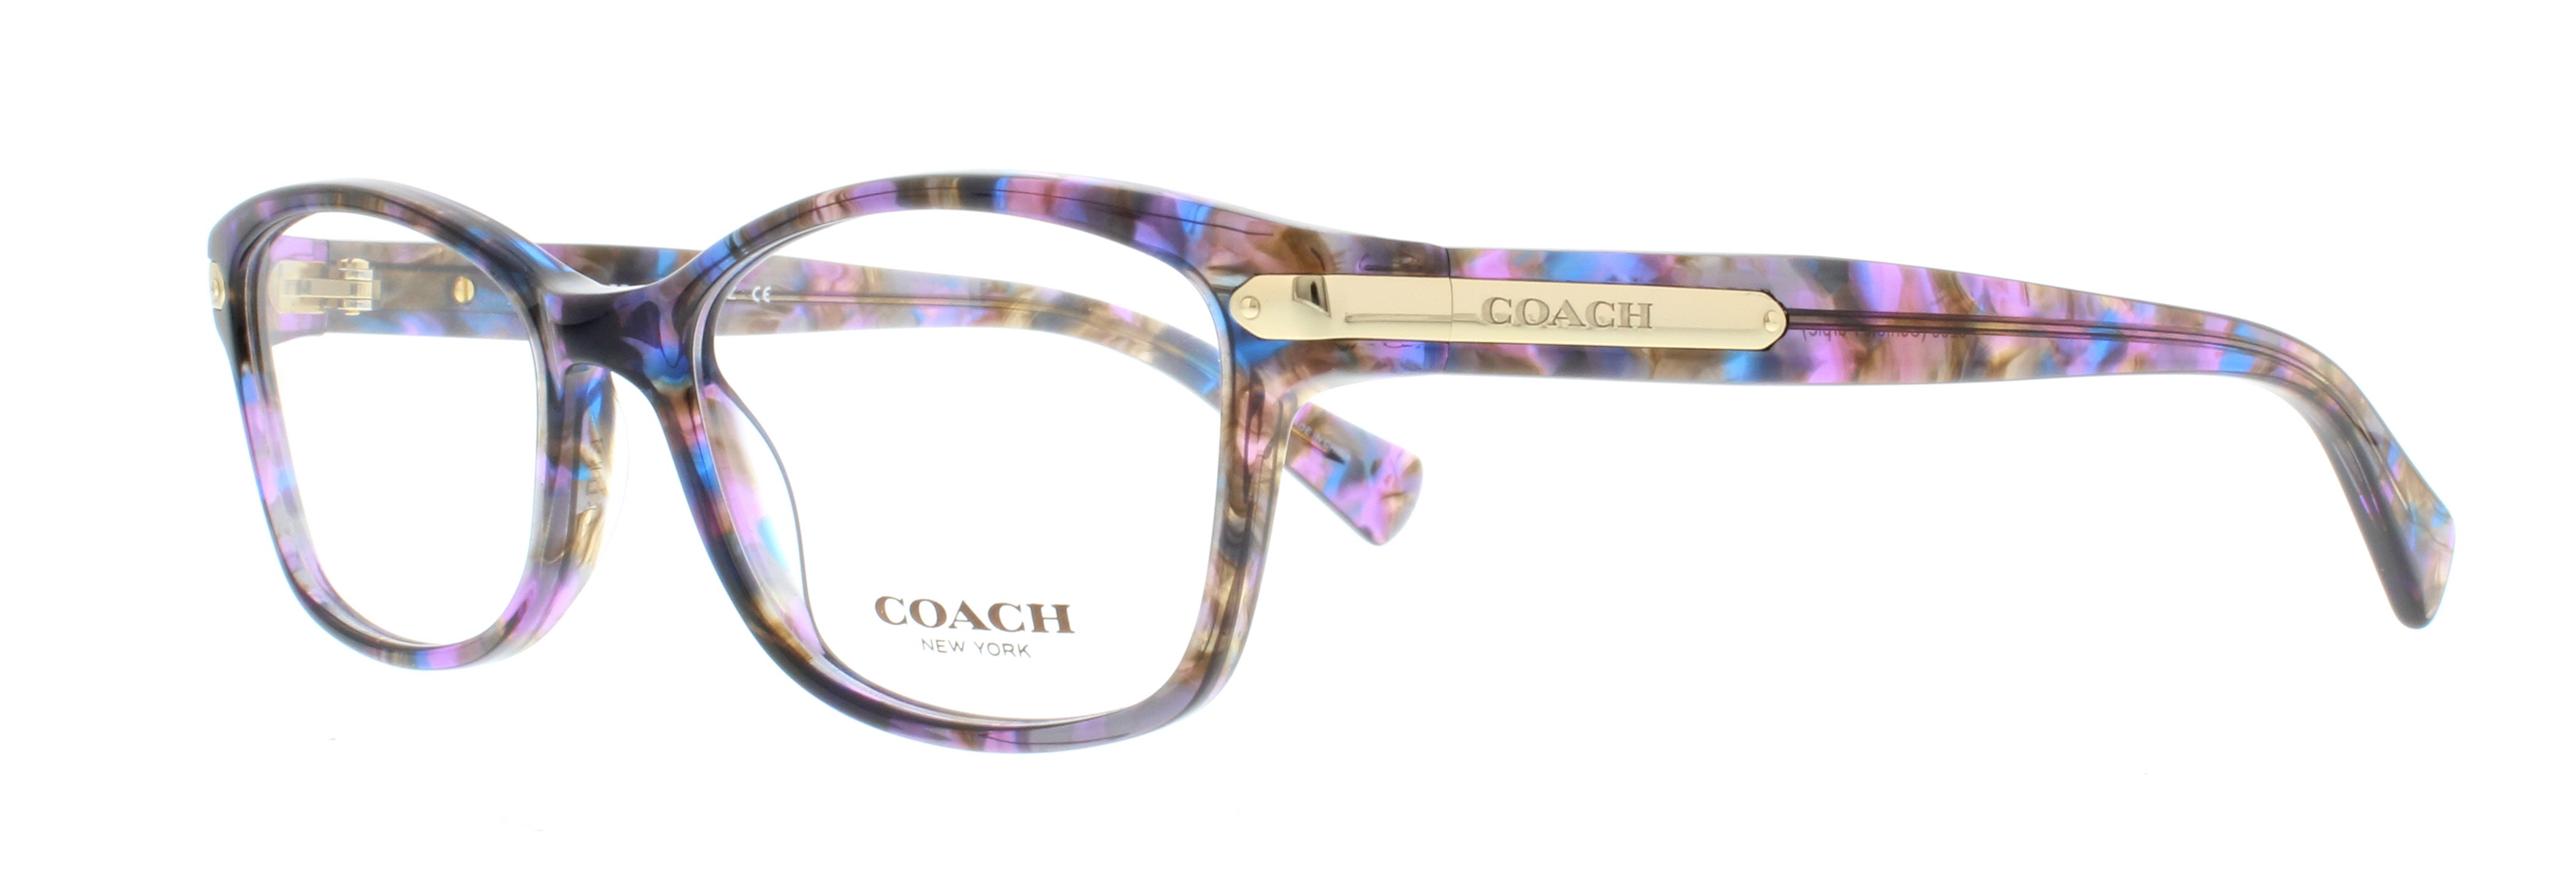 COACH Eyeglasses HC6065 5288 Confetti Purple 51MM 725125932219 | eBay